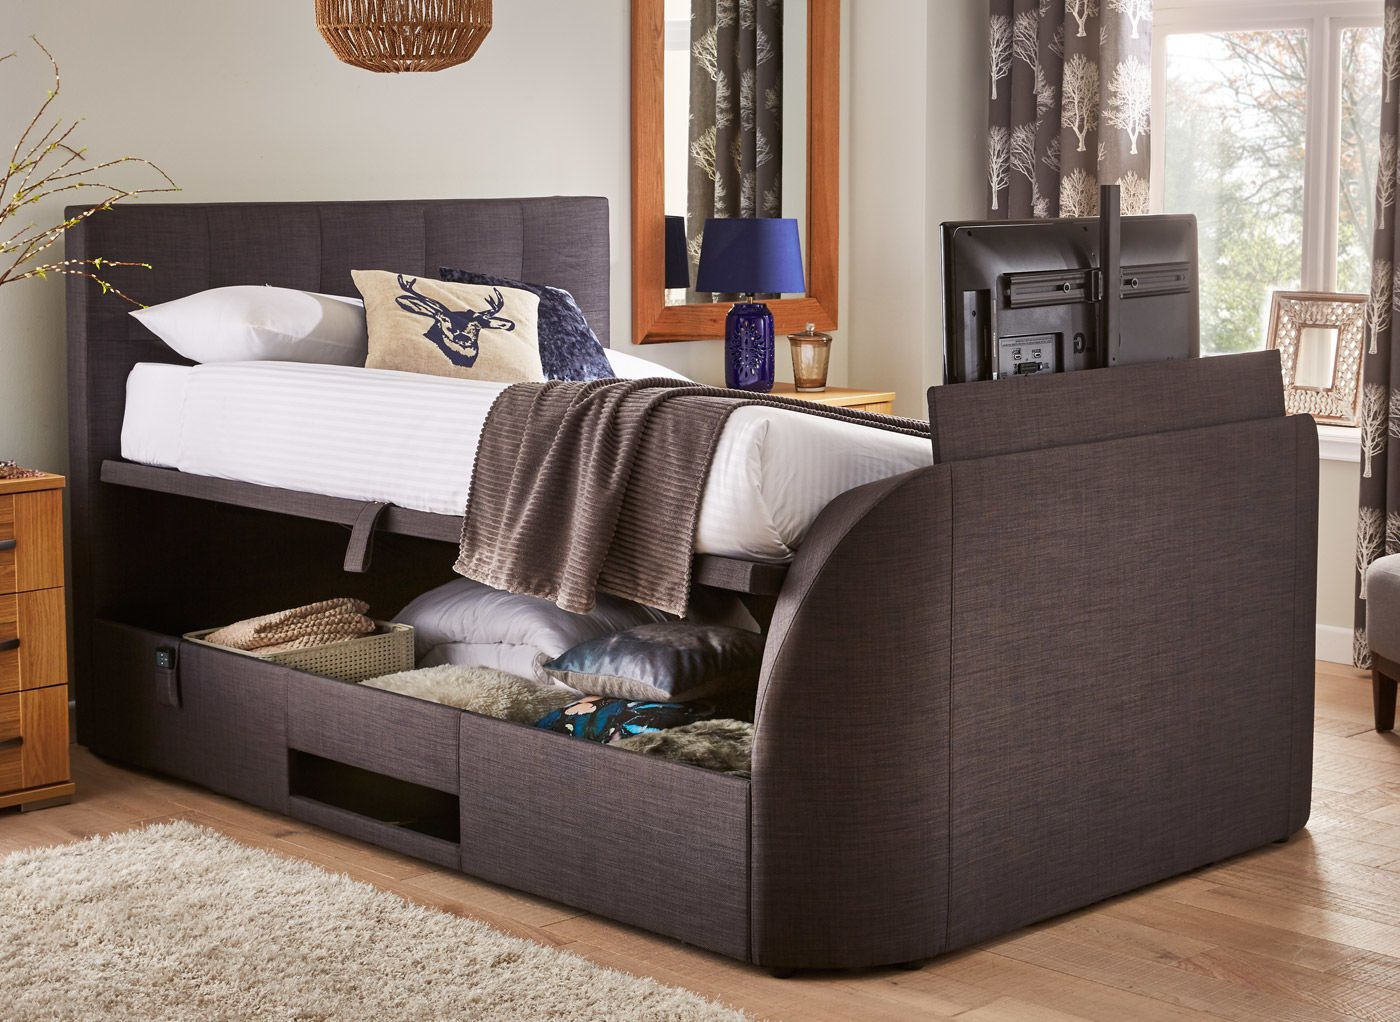 Smart Beds For Small Rooms The Evolution Ottoman Tv Bed Has A Contemporary Design